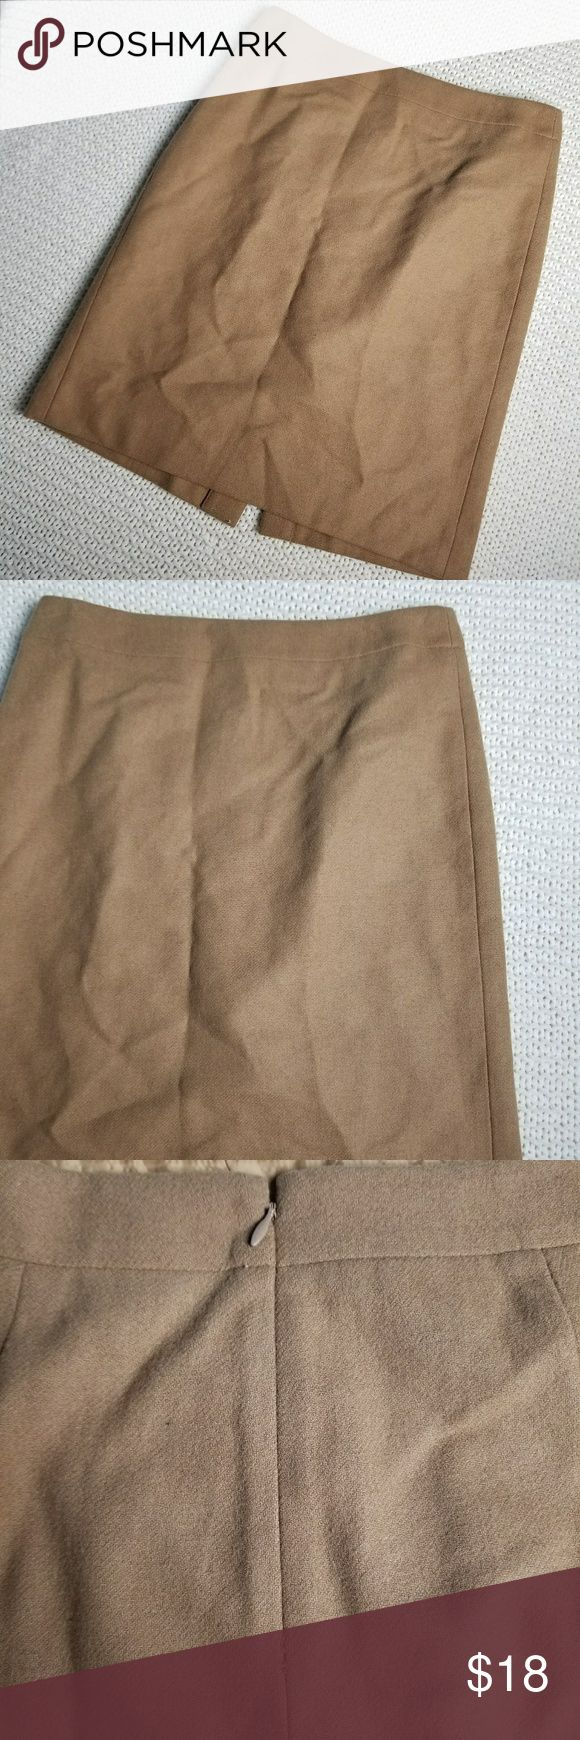 J. Crew tan pencil skirt 2 wool blend texture work Great for formal and professional events  Work office chic  Can see seam coming loose in close up Zipper enclosure  Size 2 J. Crew Skirts Pencil